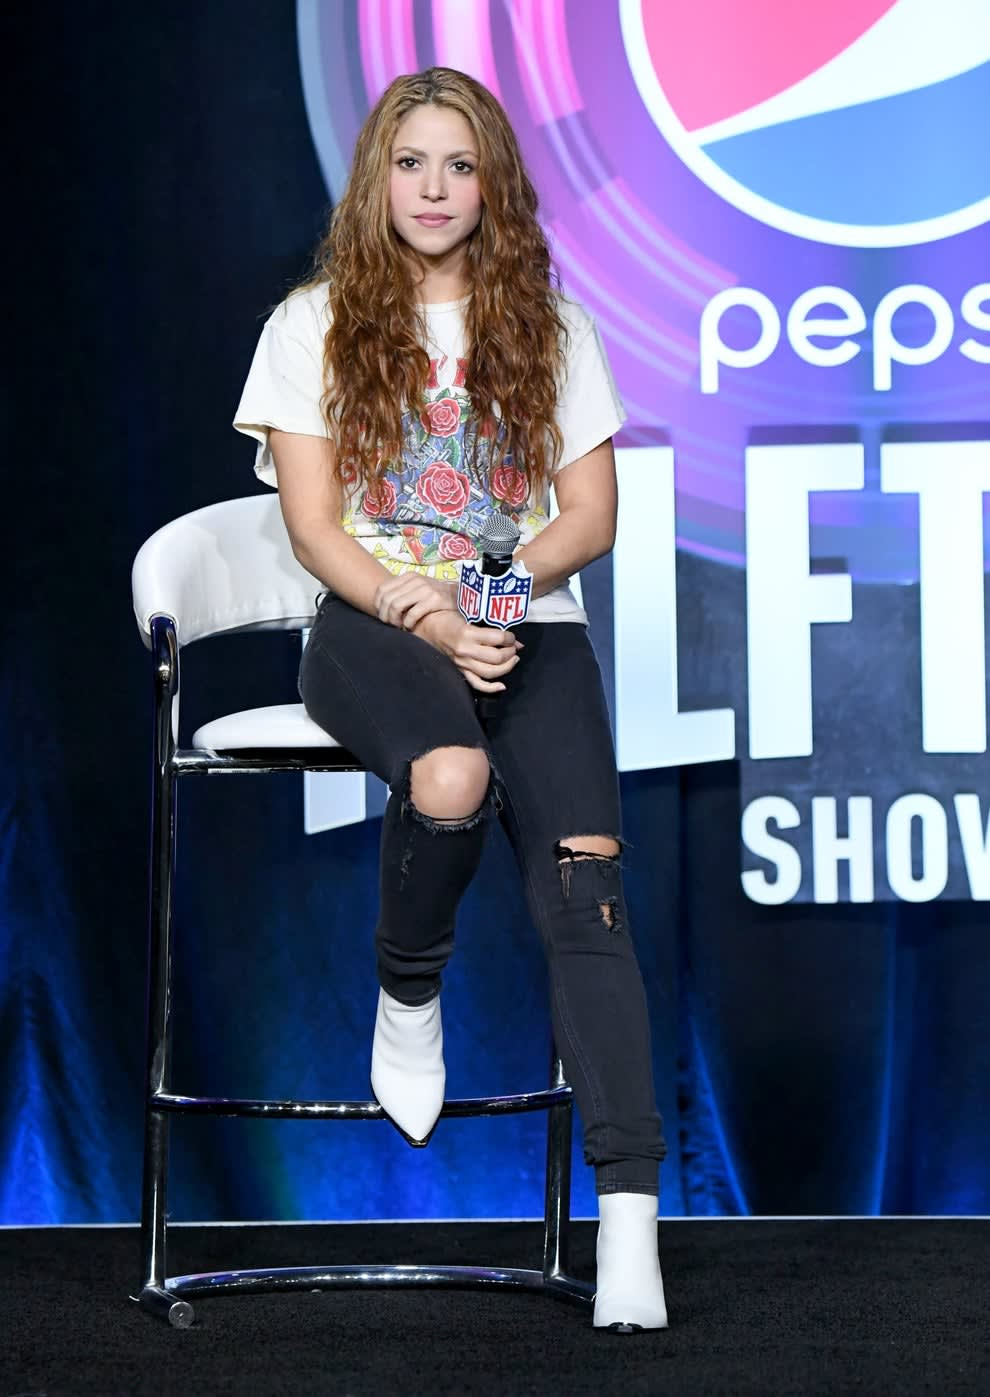 Shakira wears a graphic tee, skinny jeans with holes at the knees, and pointy toed boots.